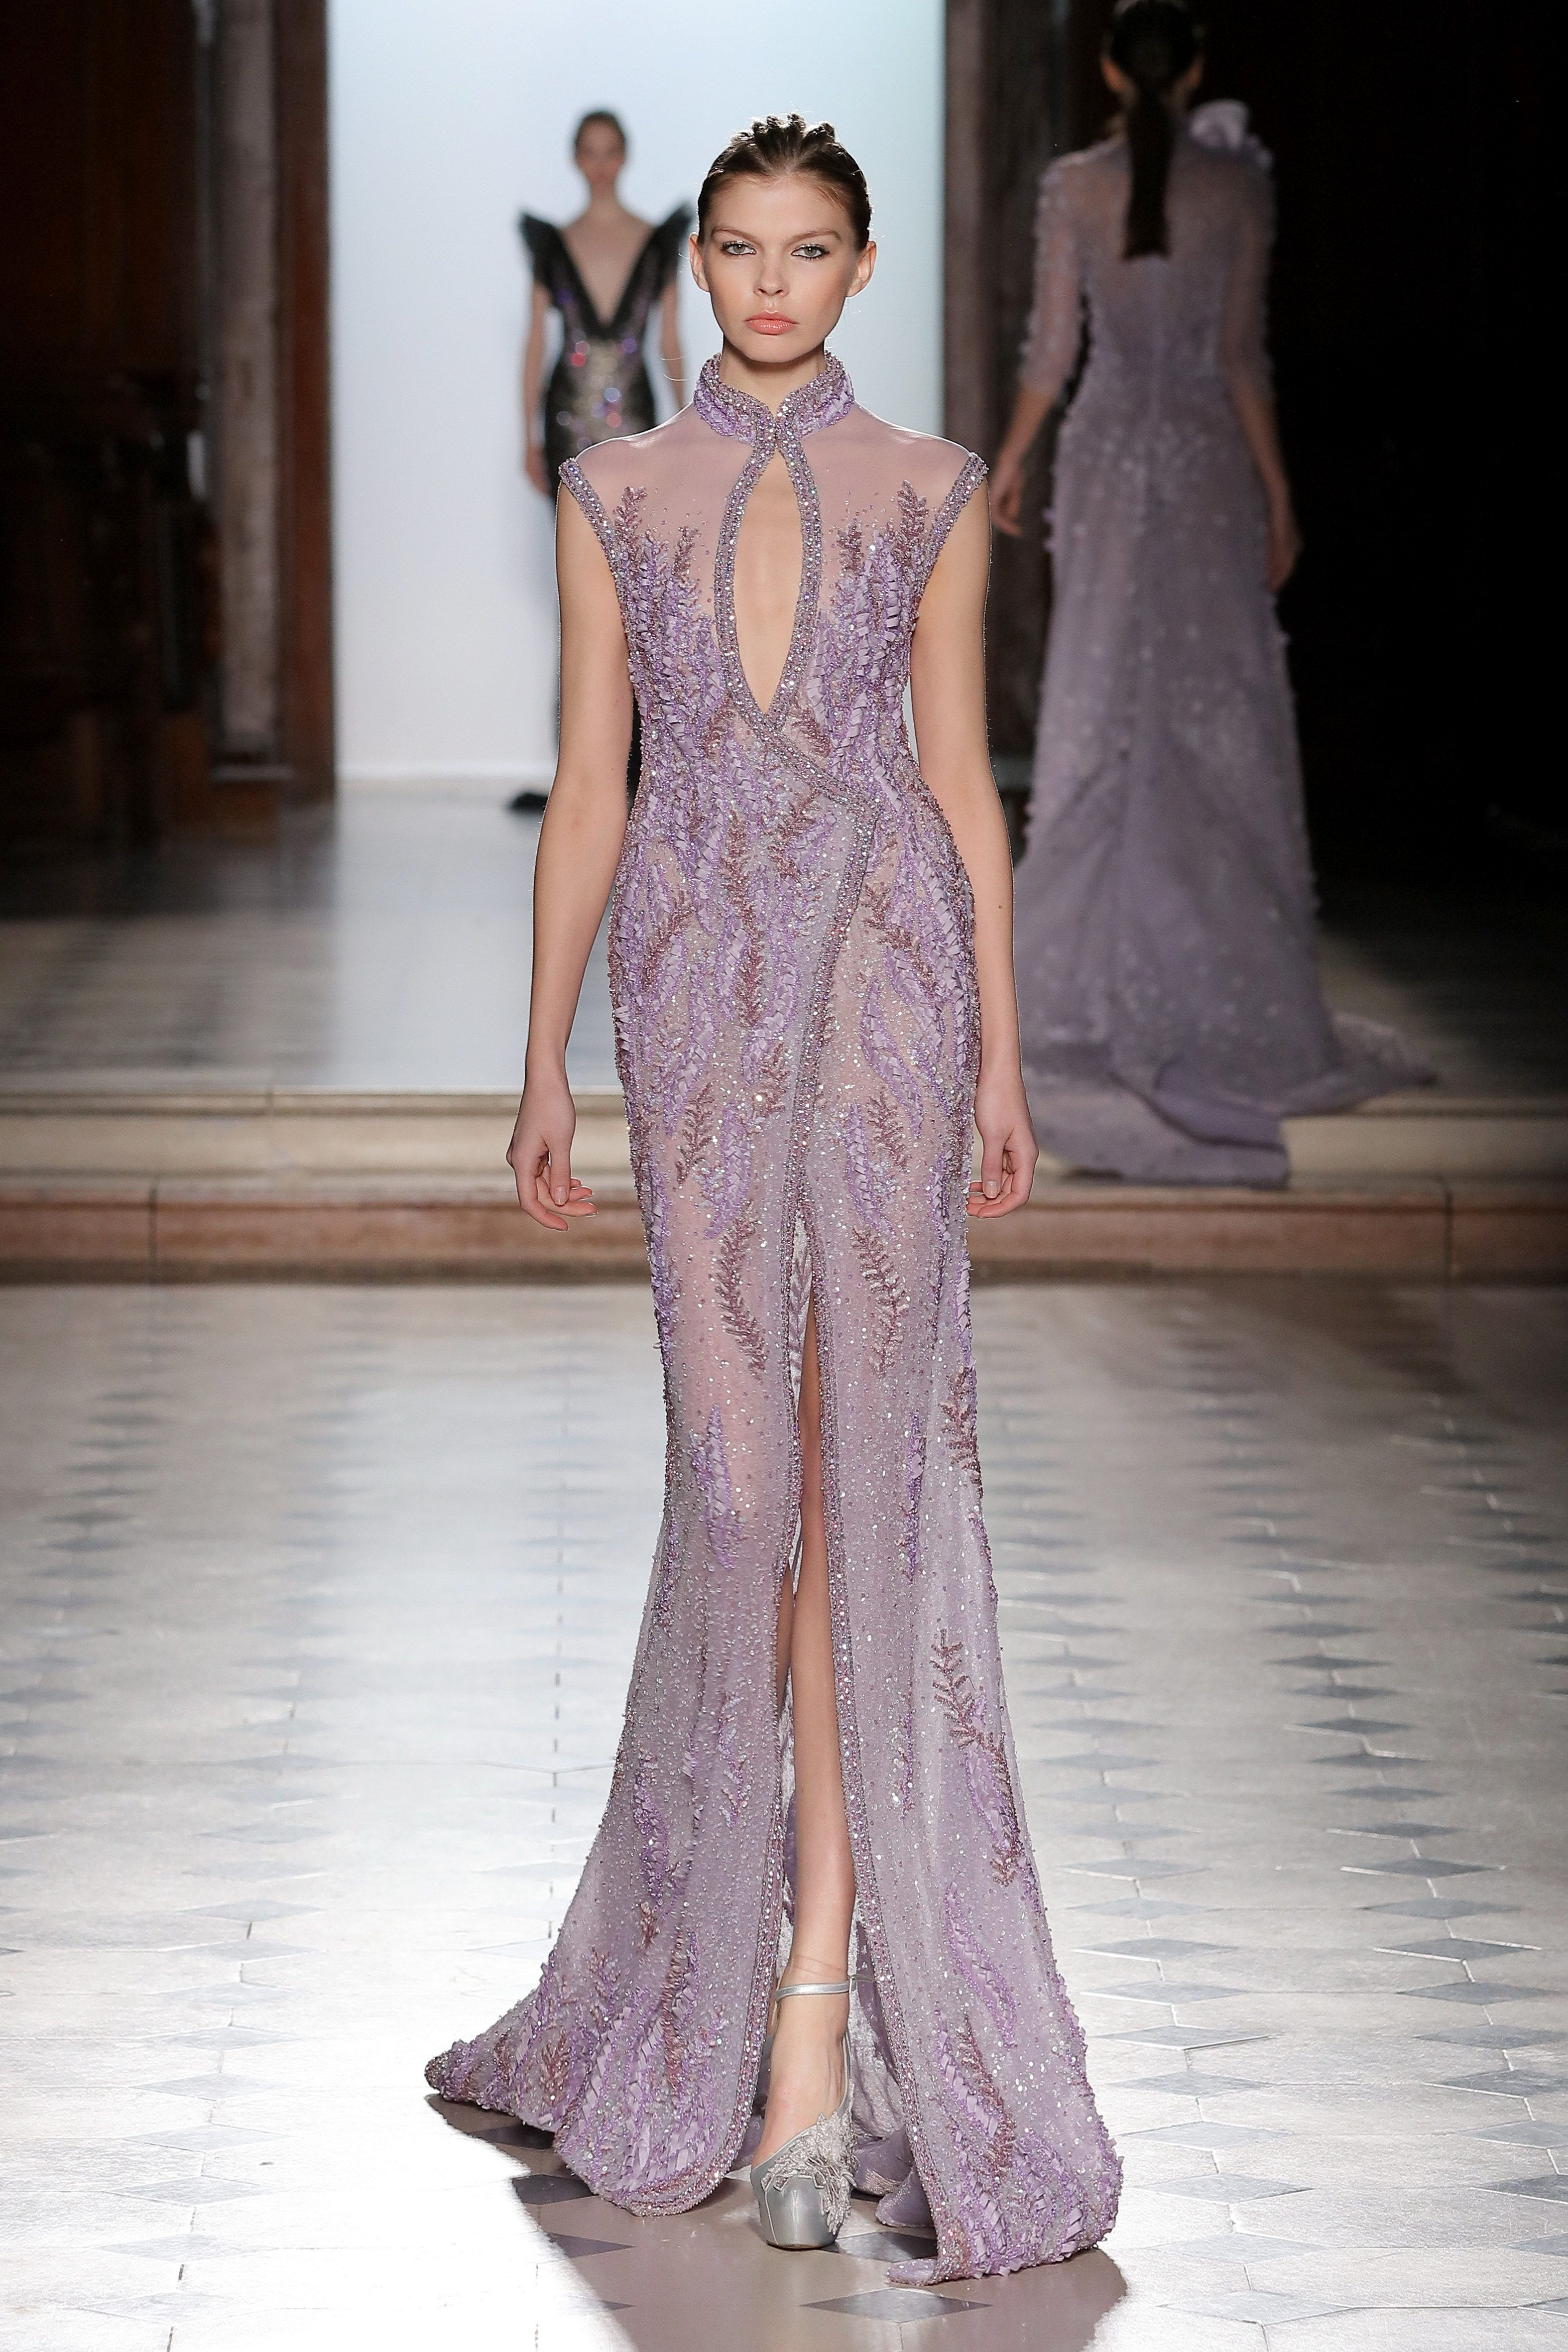 96616e3ffe6 Tony Ward Couture I Spring Summer 2018 I Lilac wrap dress fully embroidered  with silk thread and sequins